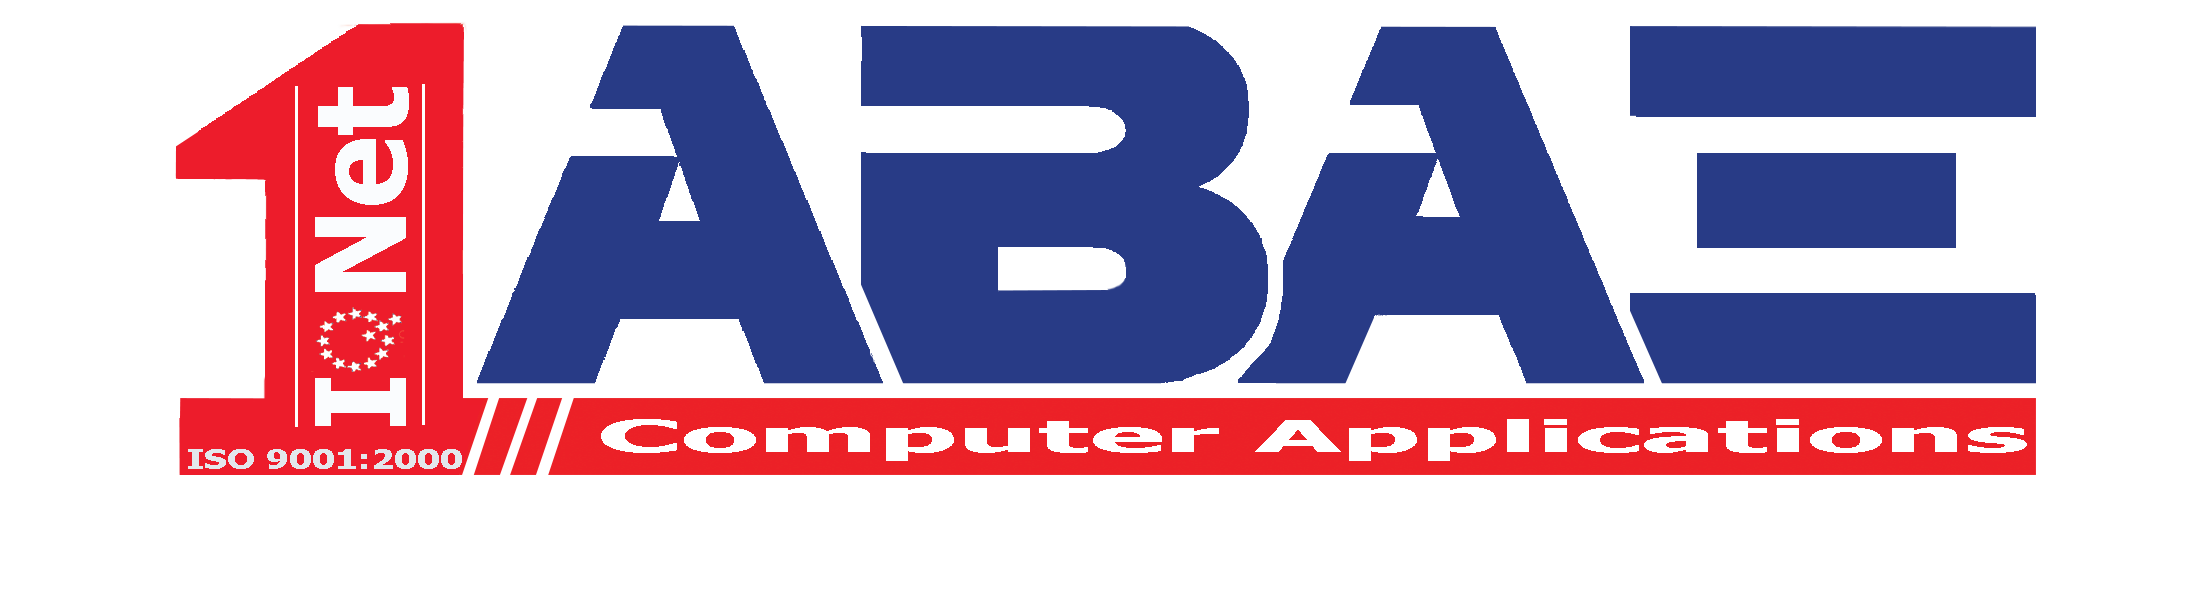 Avax Computer Applications